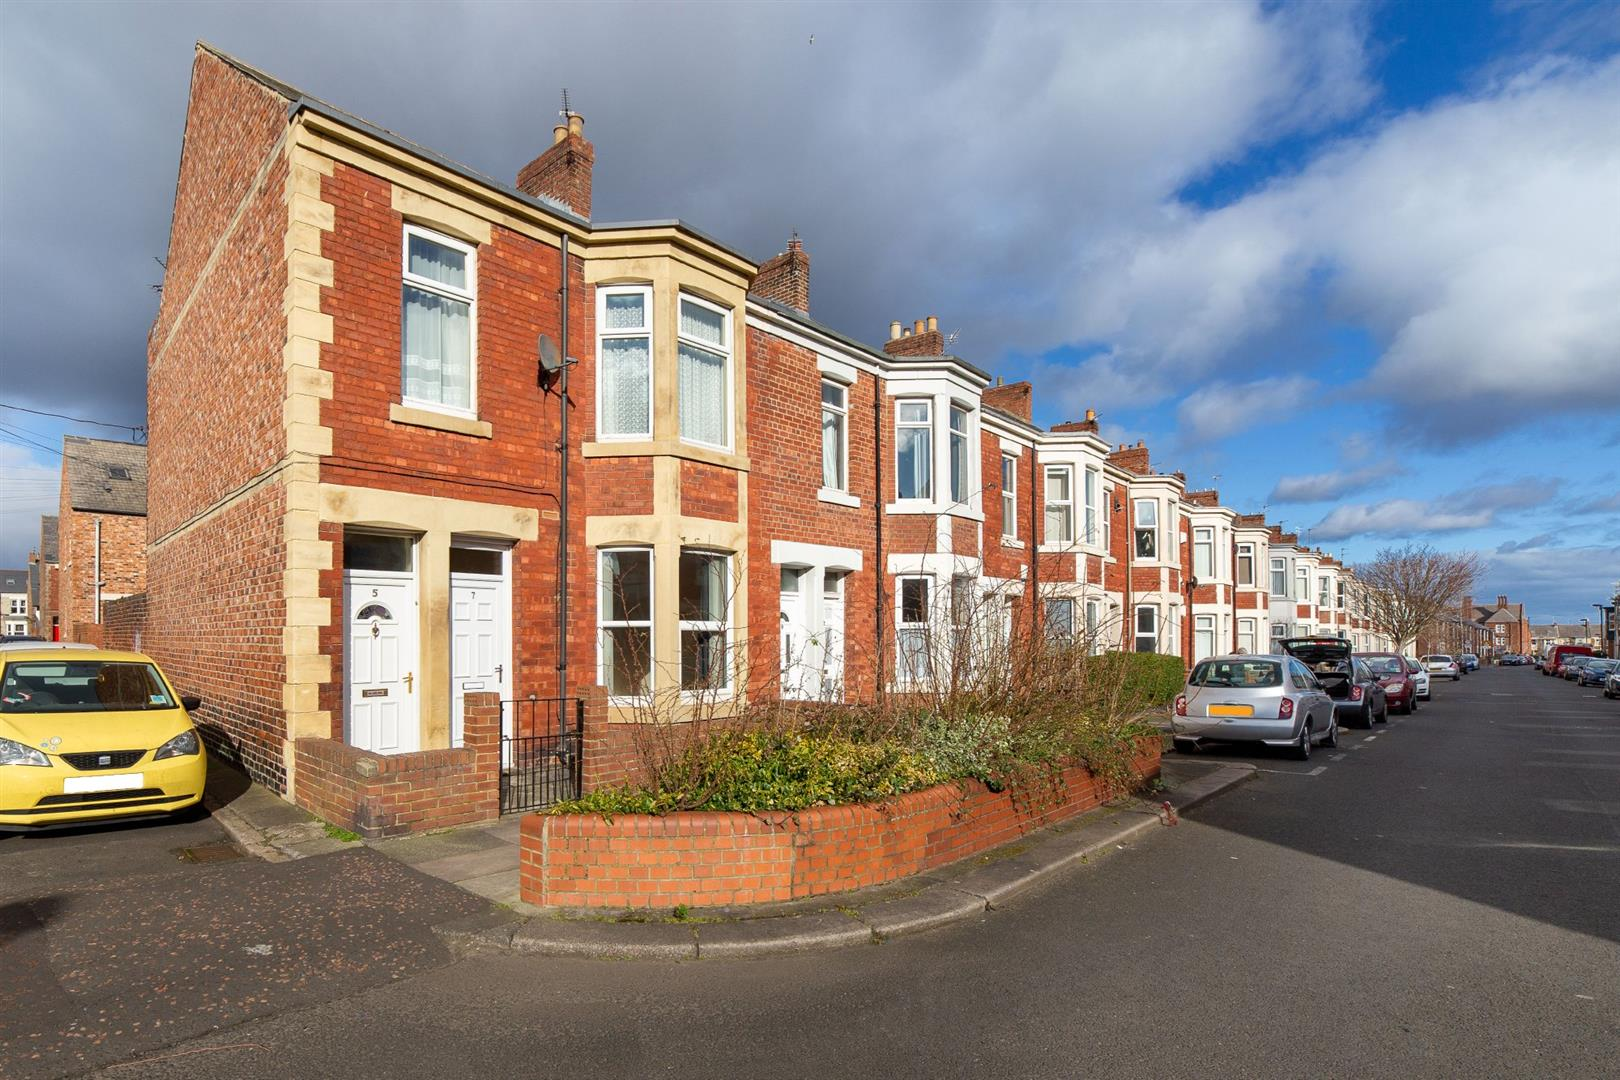 2 bed flat to rent in Newcastle Upon Tyne, NE6 5XY - Property Image 1